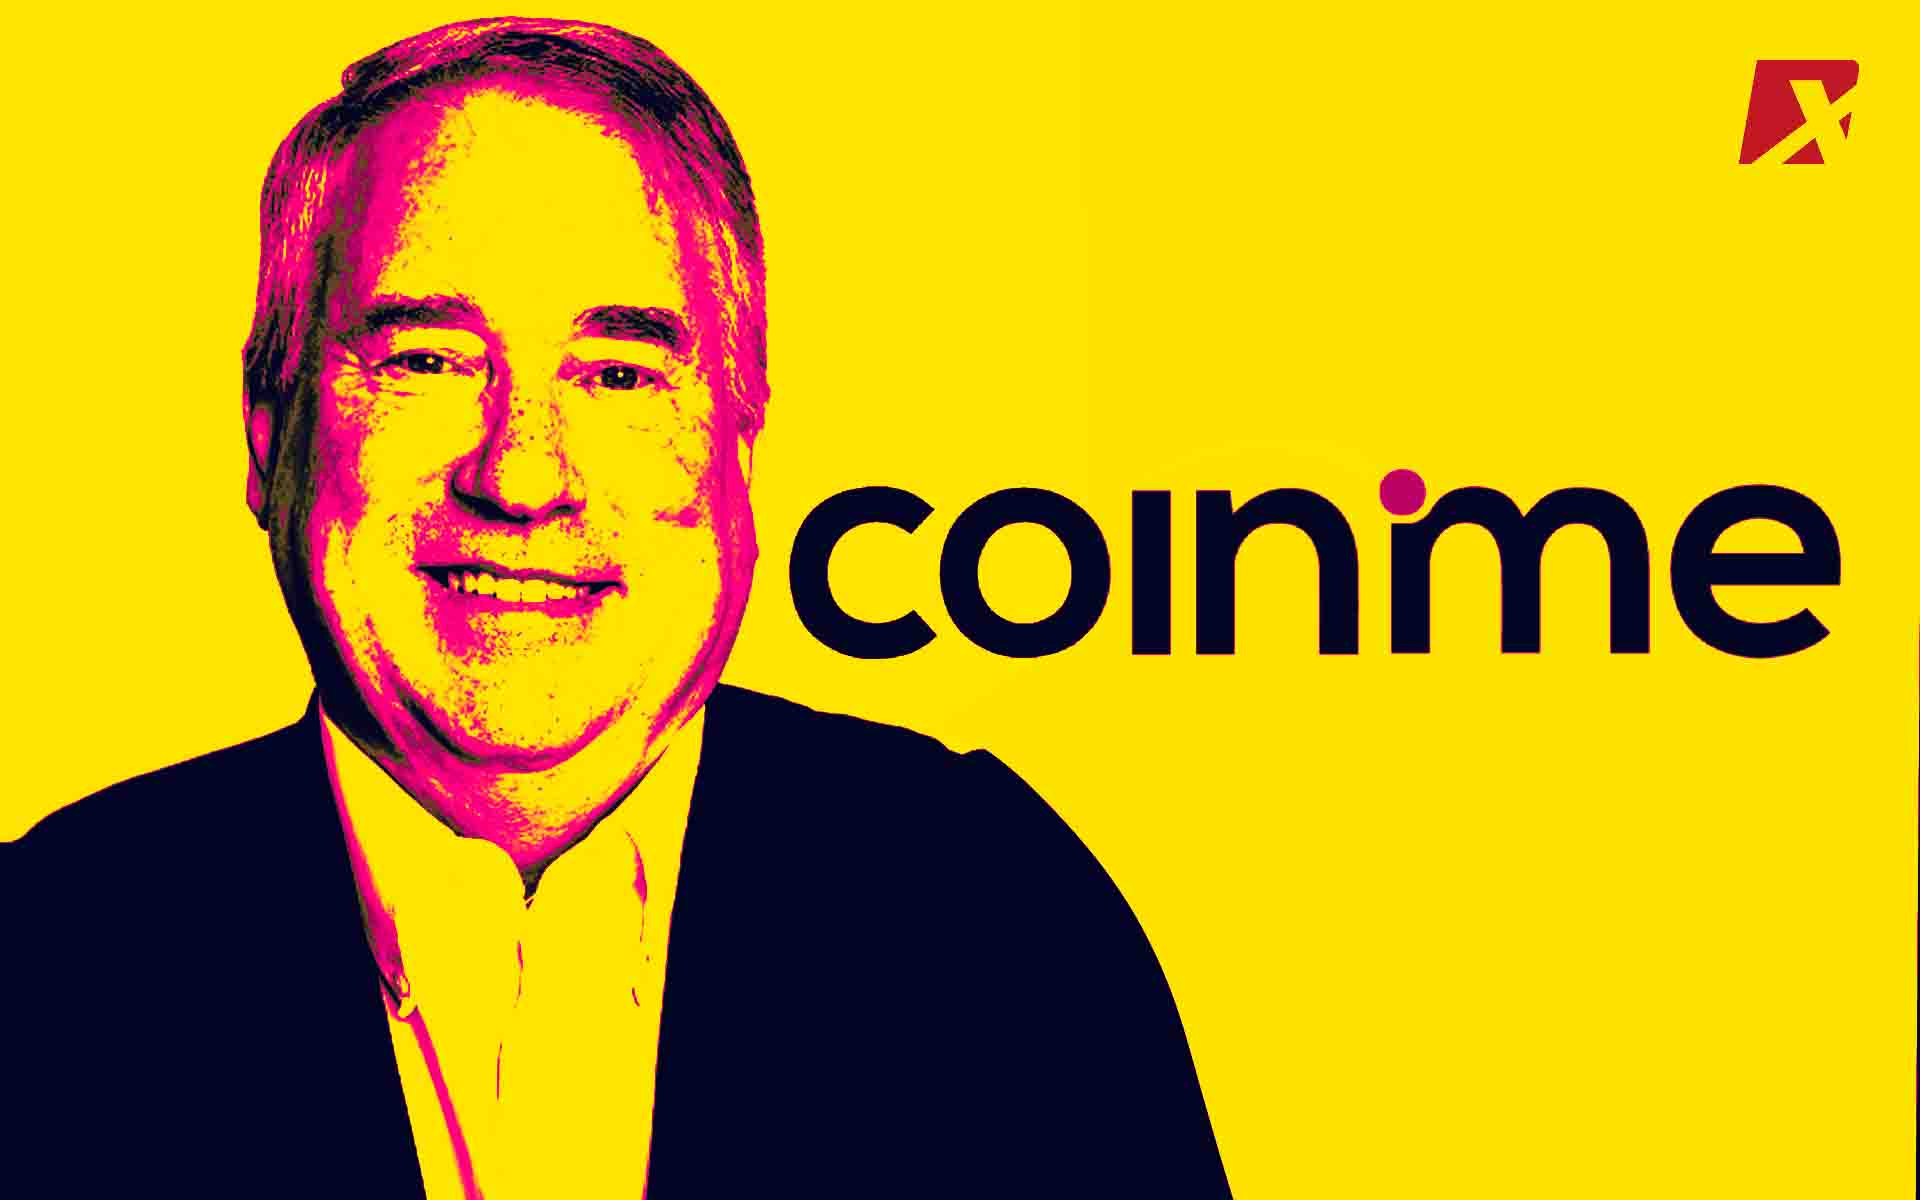 America's First Licensed Bitcoin ATM Coinme Has A New CFO